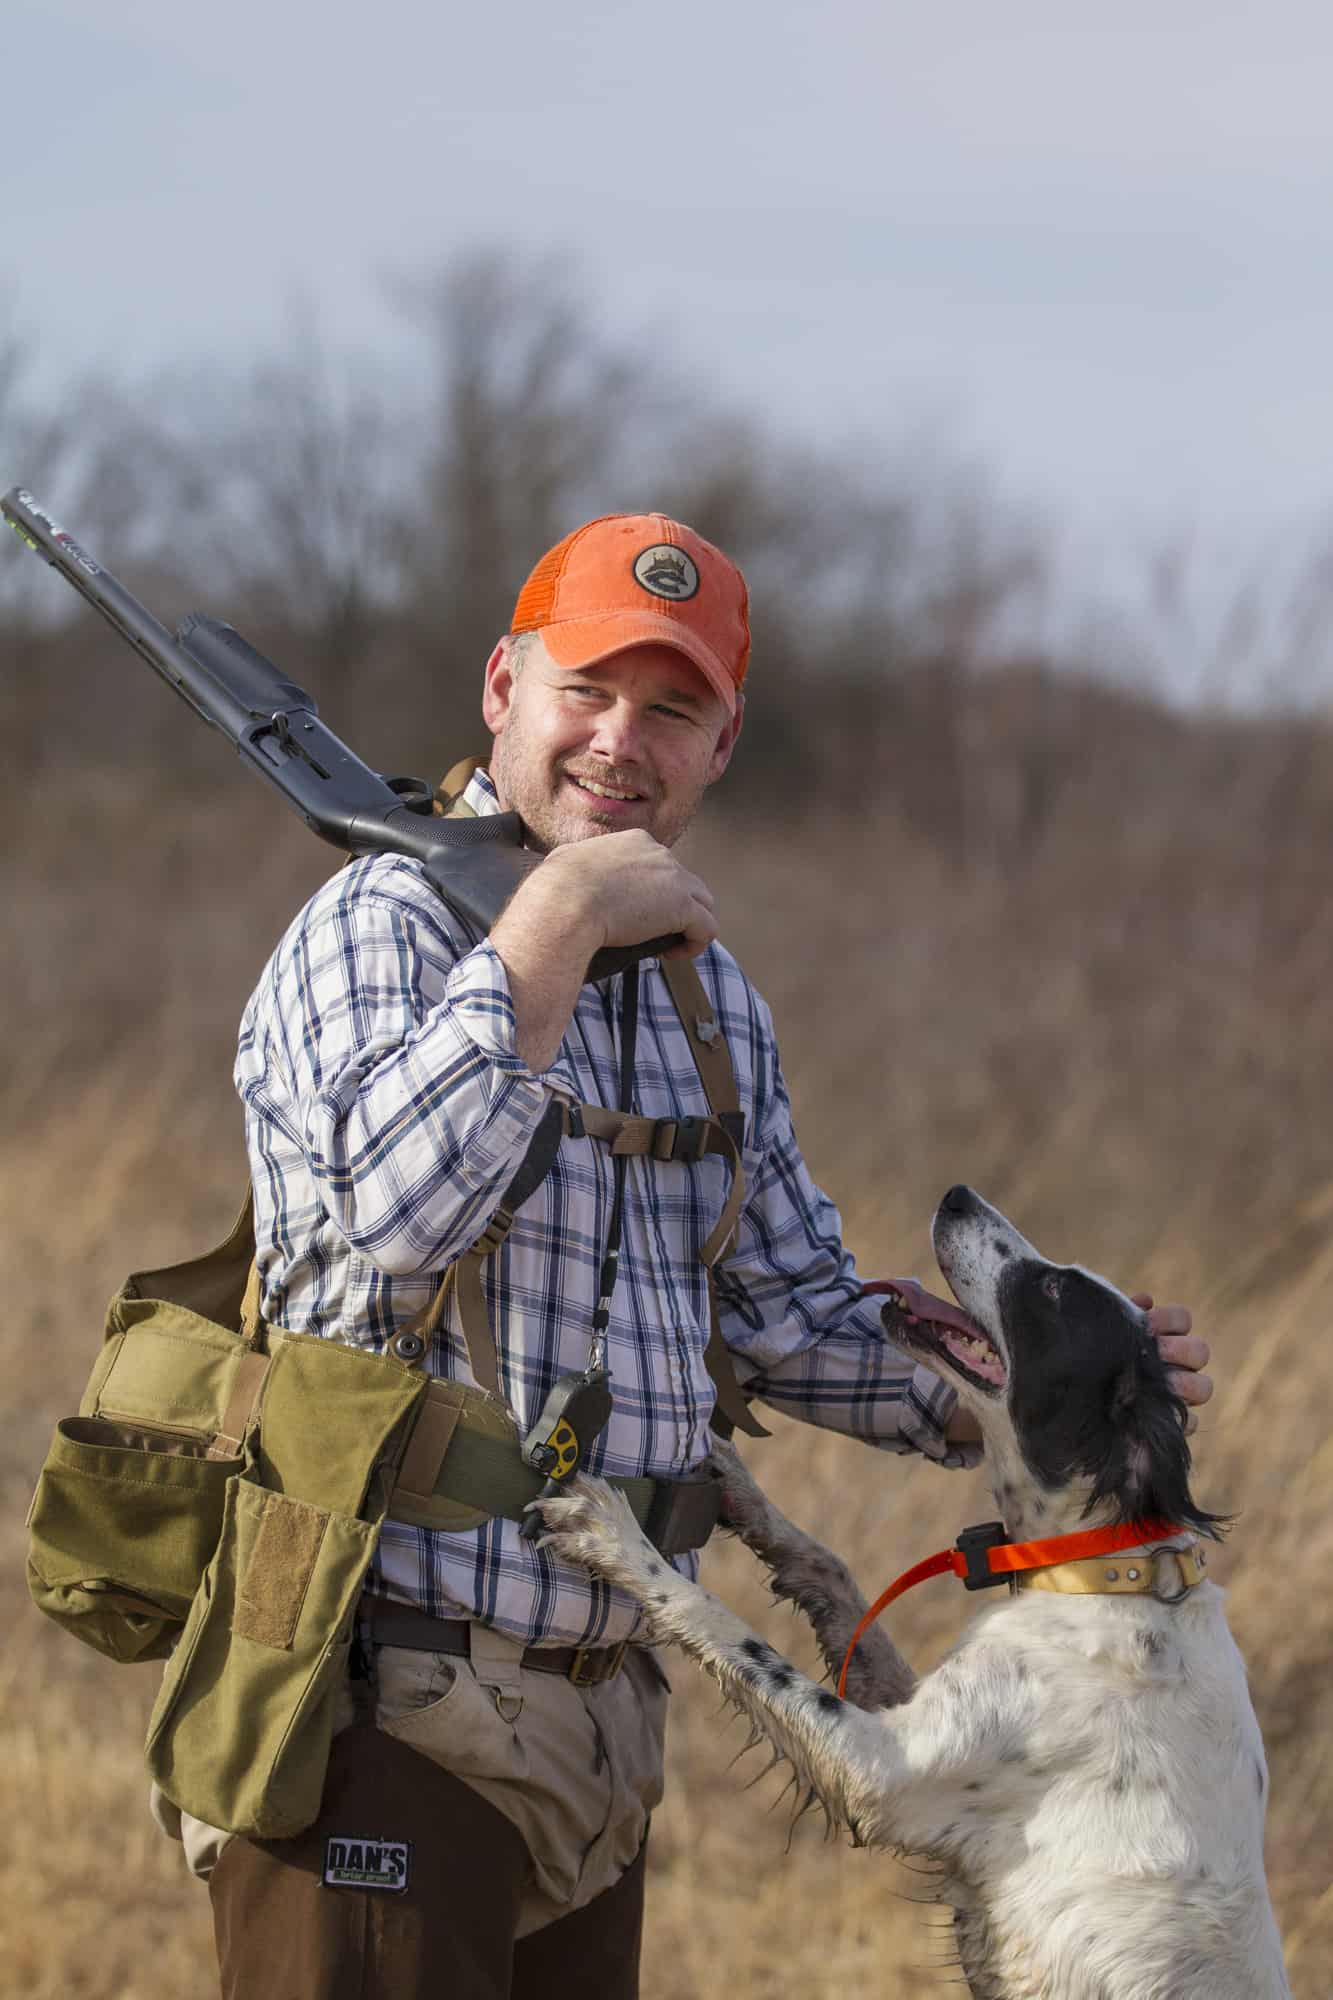 Upland Bird Hunting and Building the Hunting Heritage